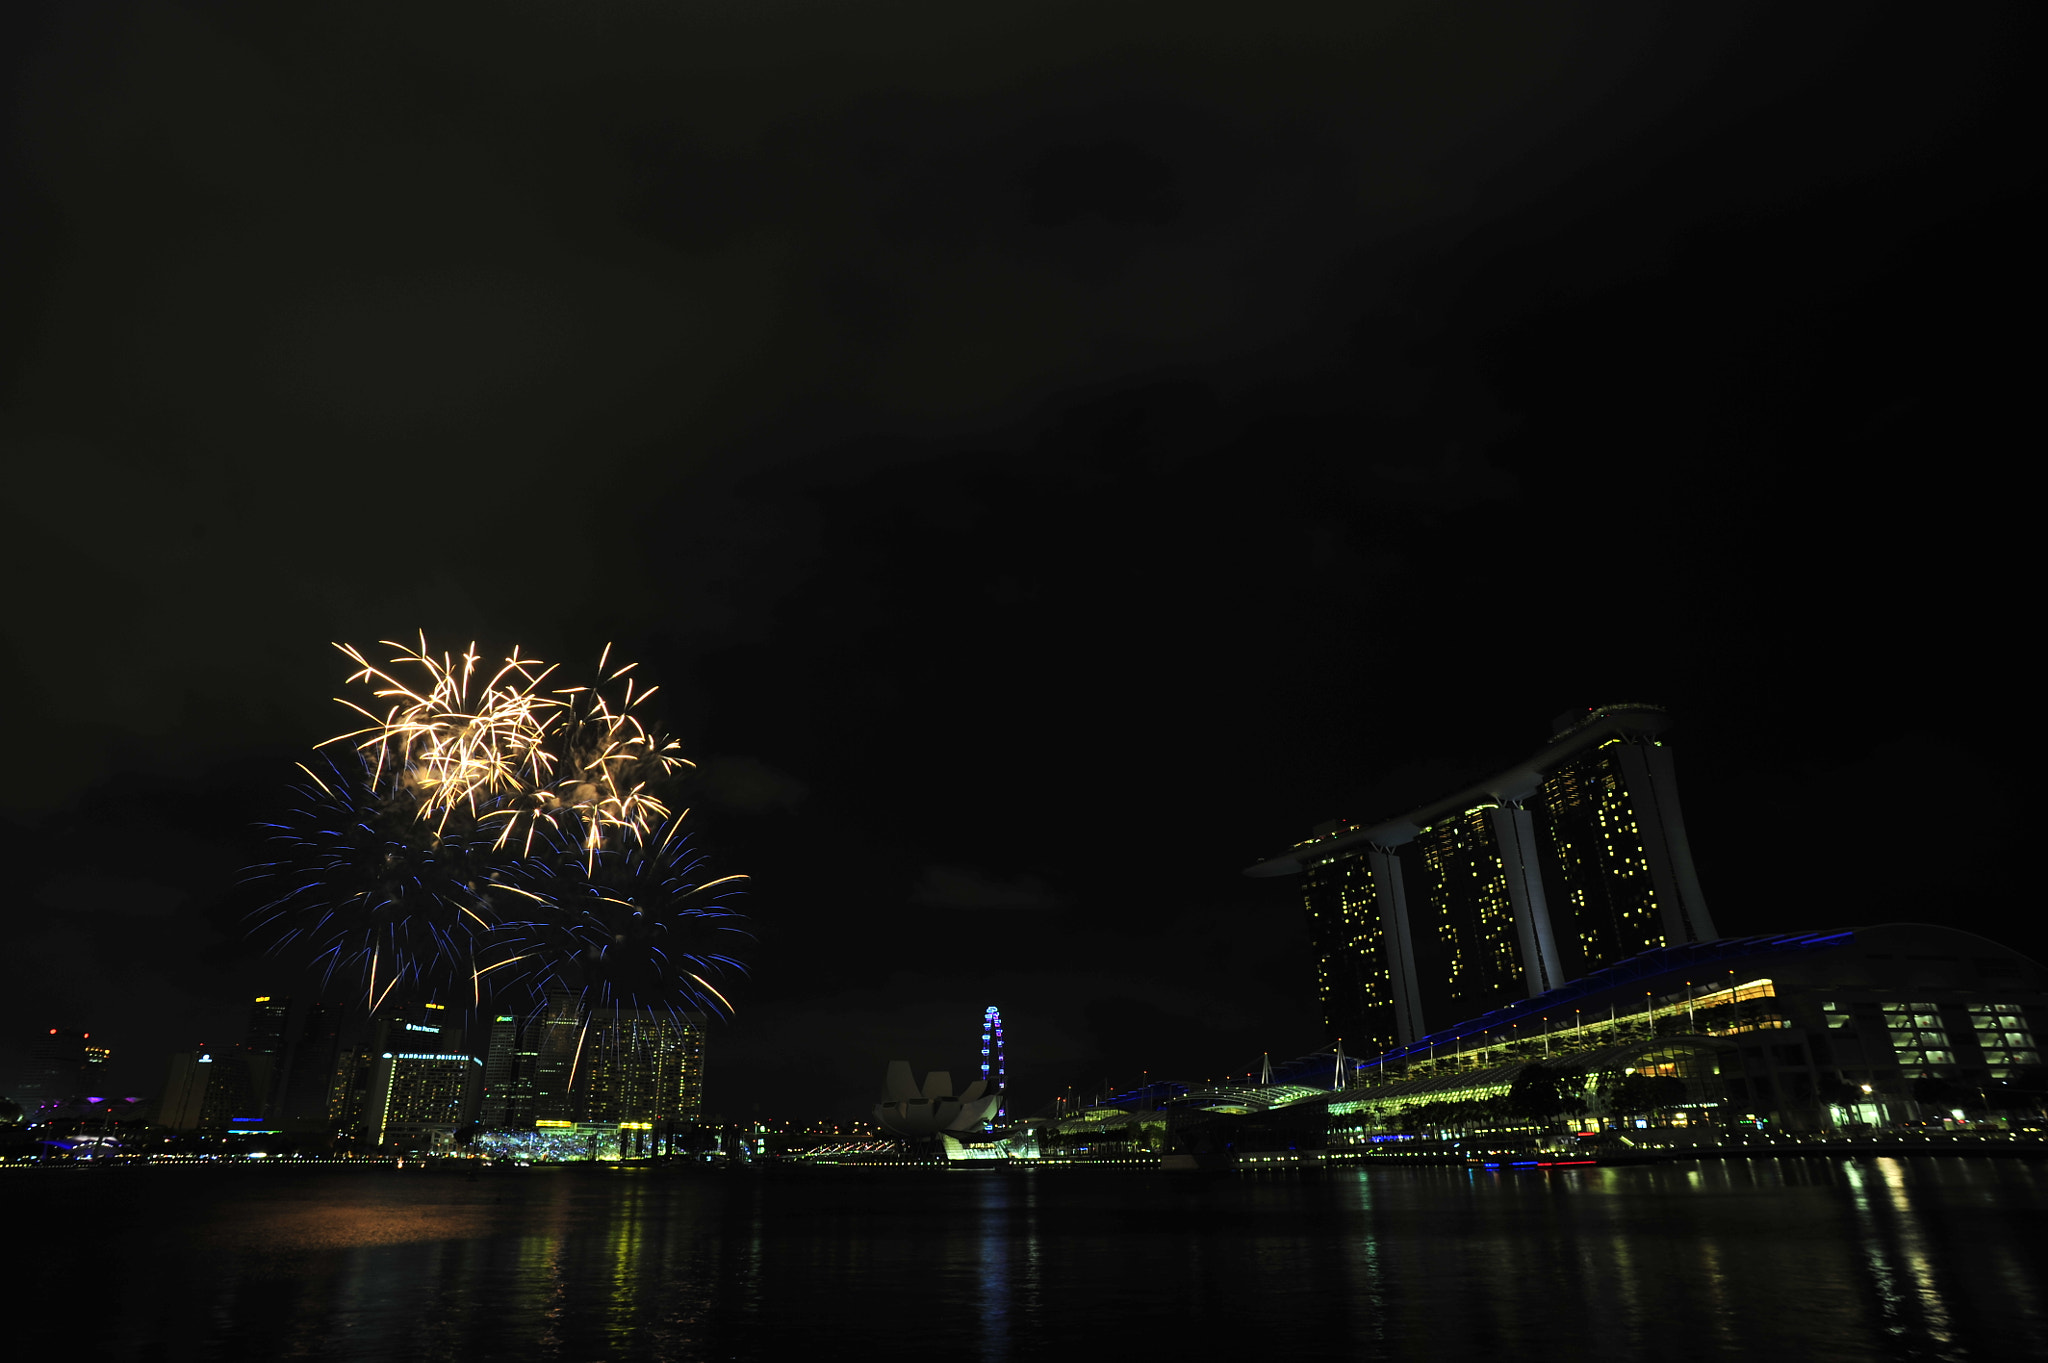 Photograph Fireworks by kitaro9202 on 500px